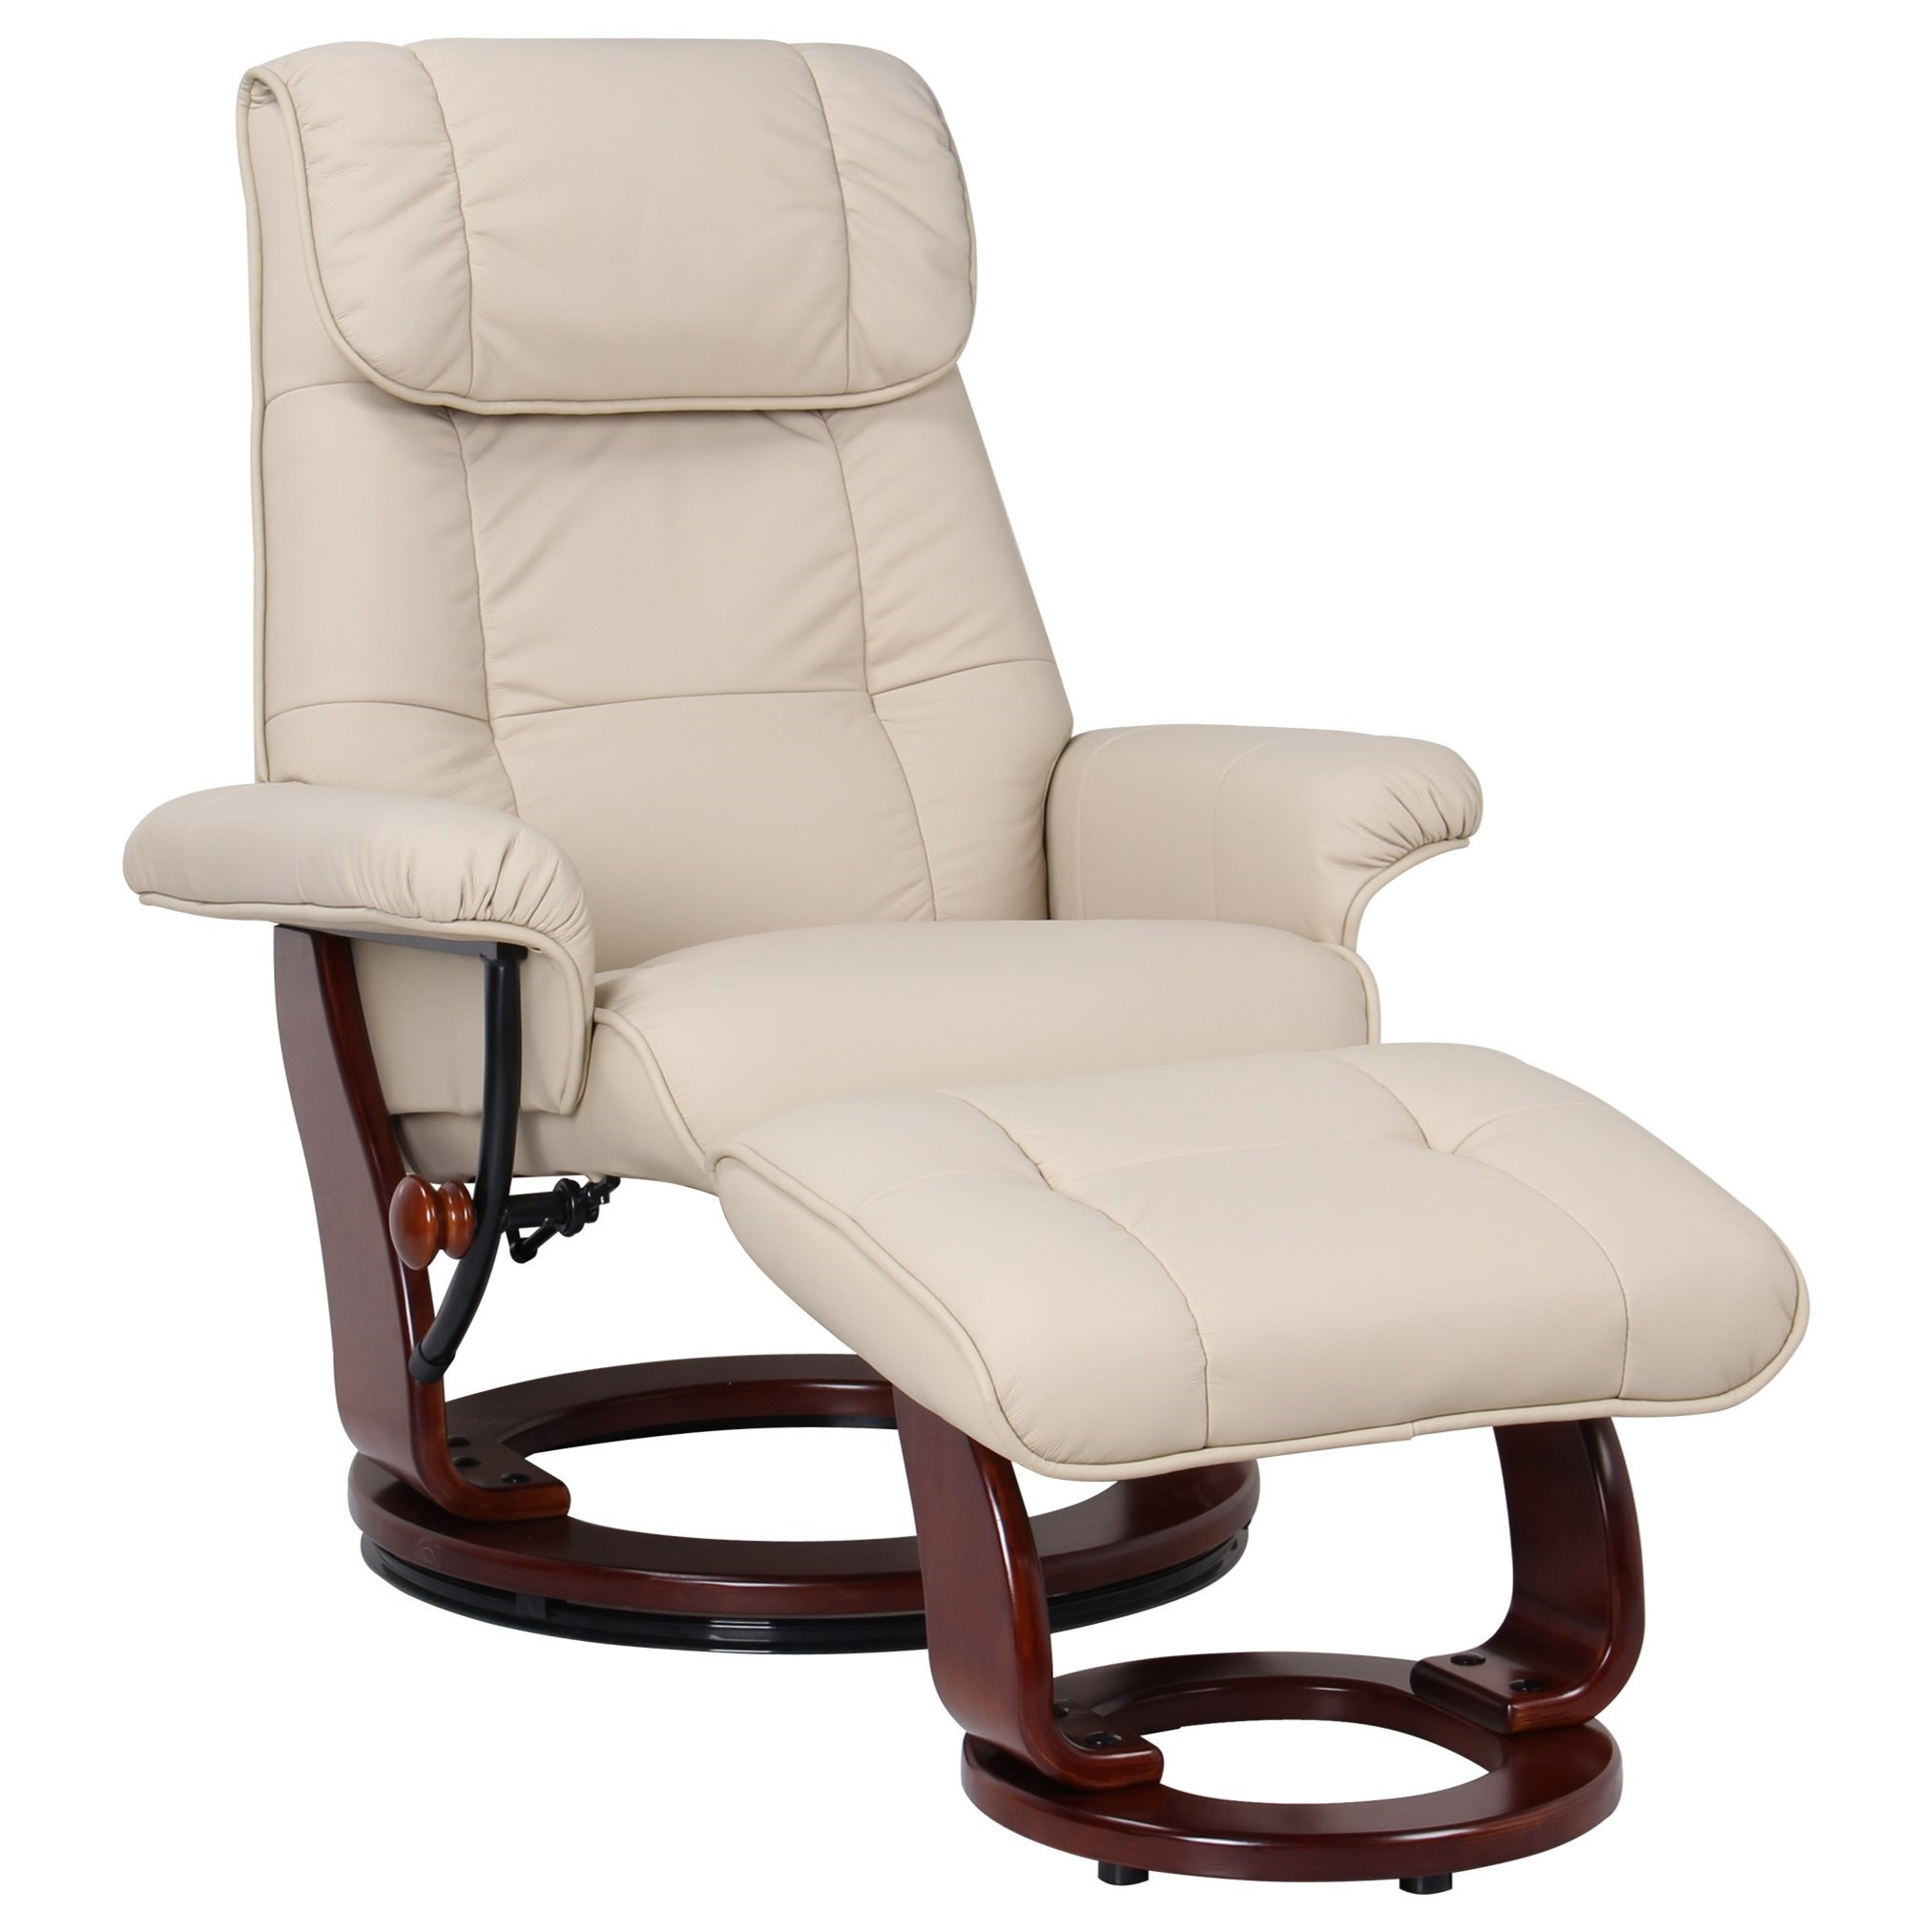 Leather Swivel Reclining Chairs You Ll Love In 2021 Visualhunt